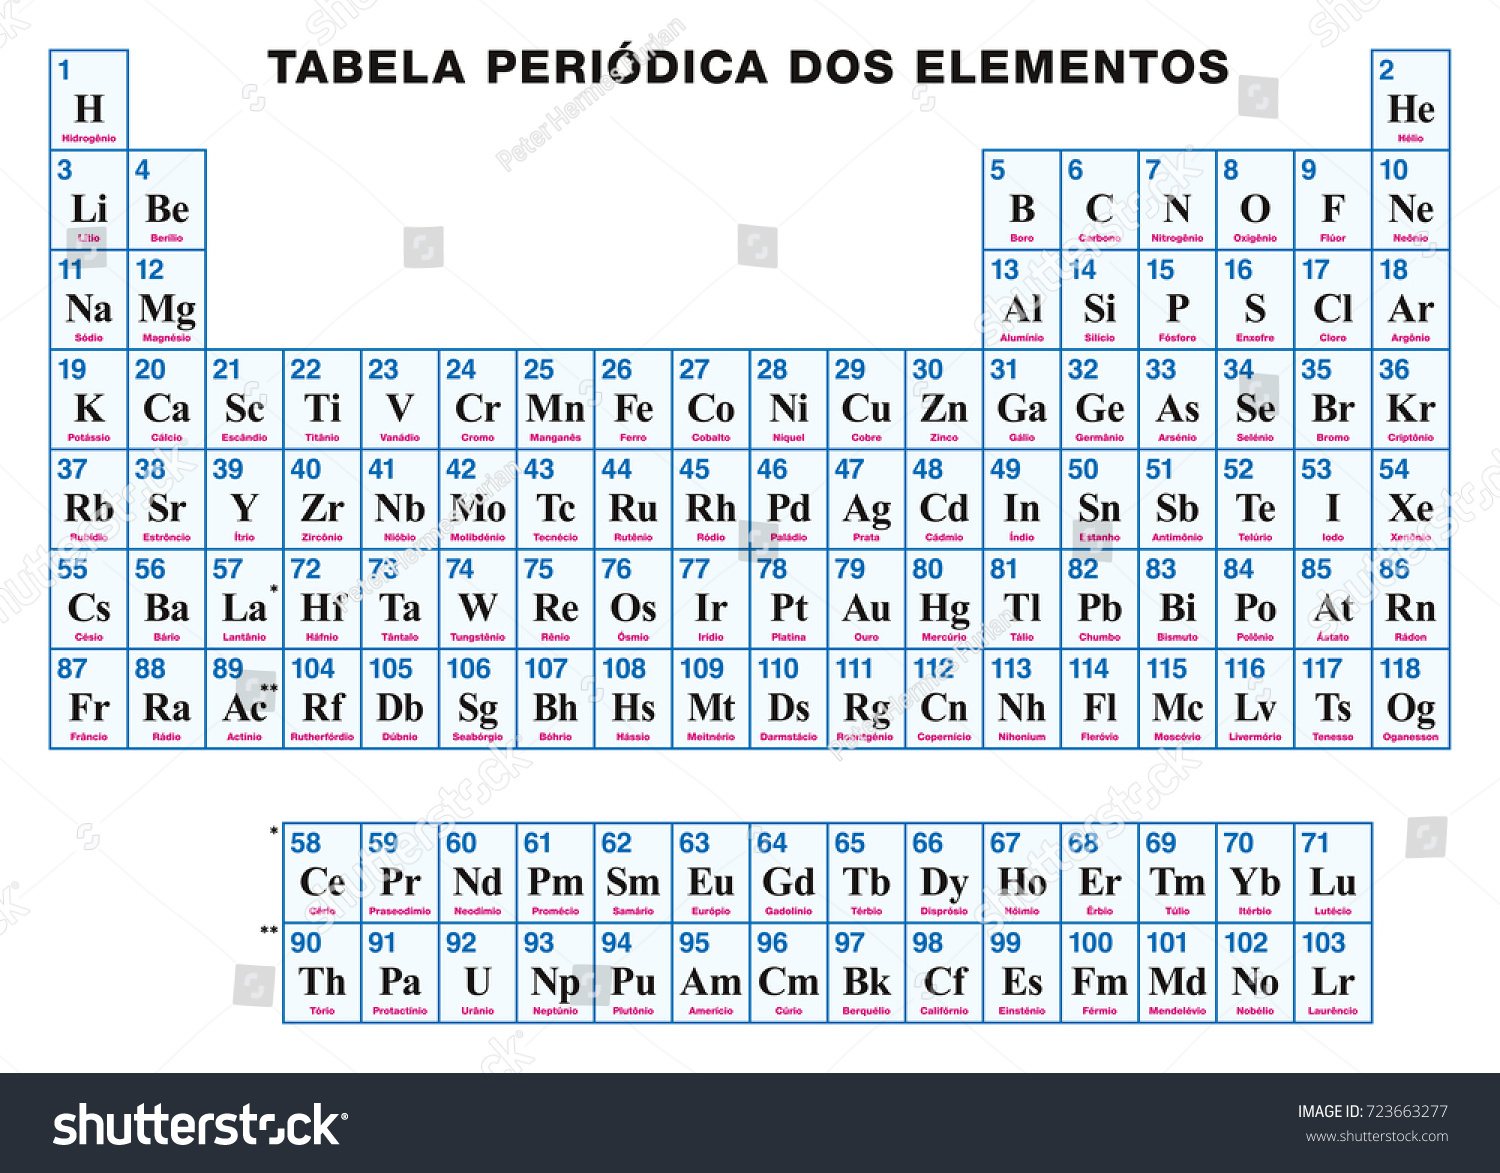 Periodic table symbols and names crossword image collections periodic table symbols and names crossword image collections periodic table symbols and names crossword answers images gamestrikefo Image collections